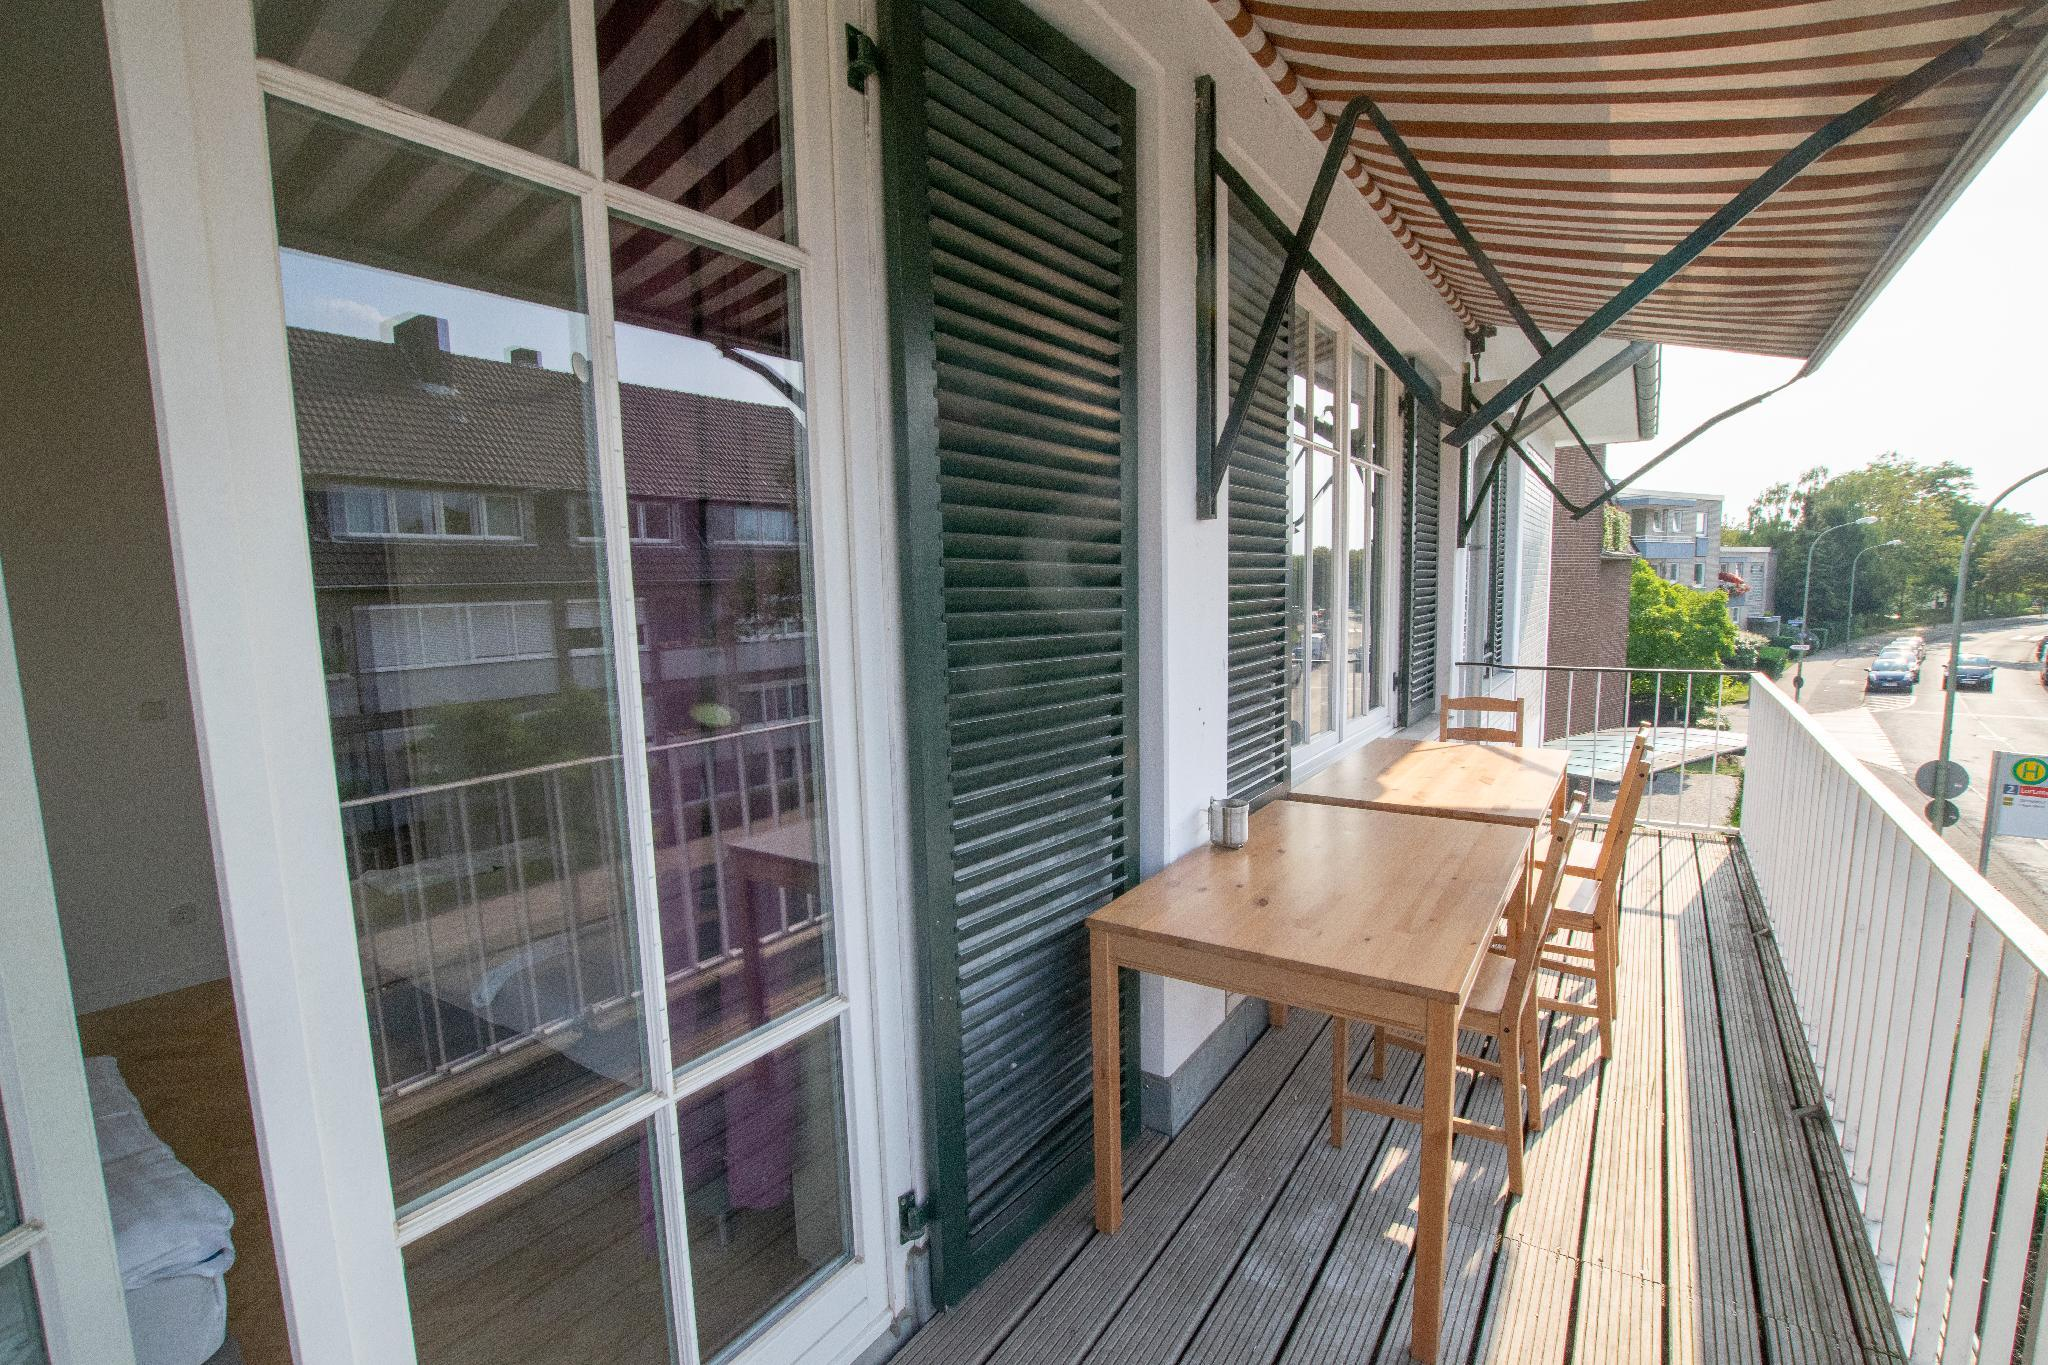 Tolstov Hotels 4 Room Villa Apartment With Terasse